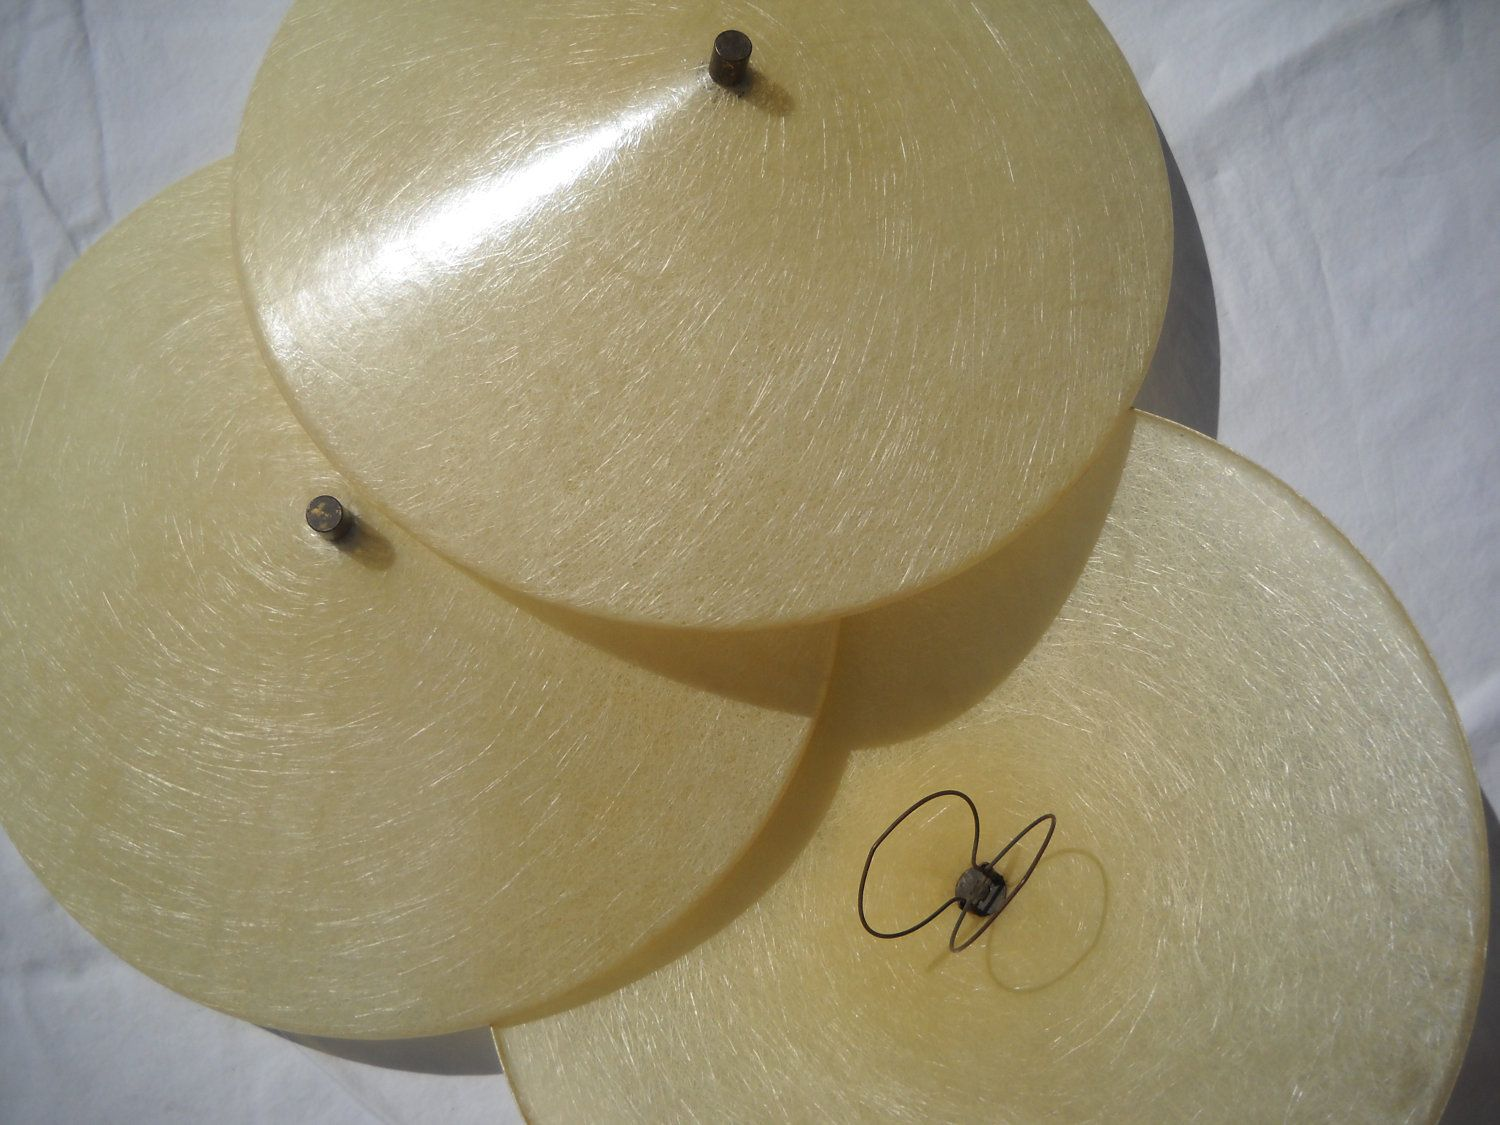 Mid century fiberglass clip on ceiling light shade china mans hat mid century fiberglass clip on ceiling light shade china mans hat only 1 left mozeypictures Image collections